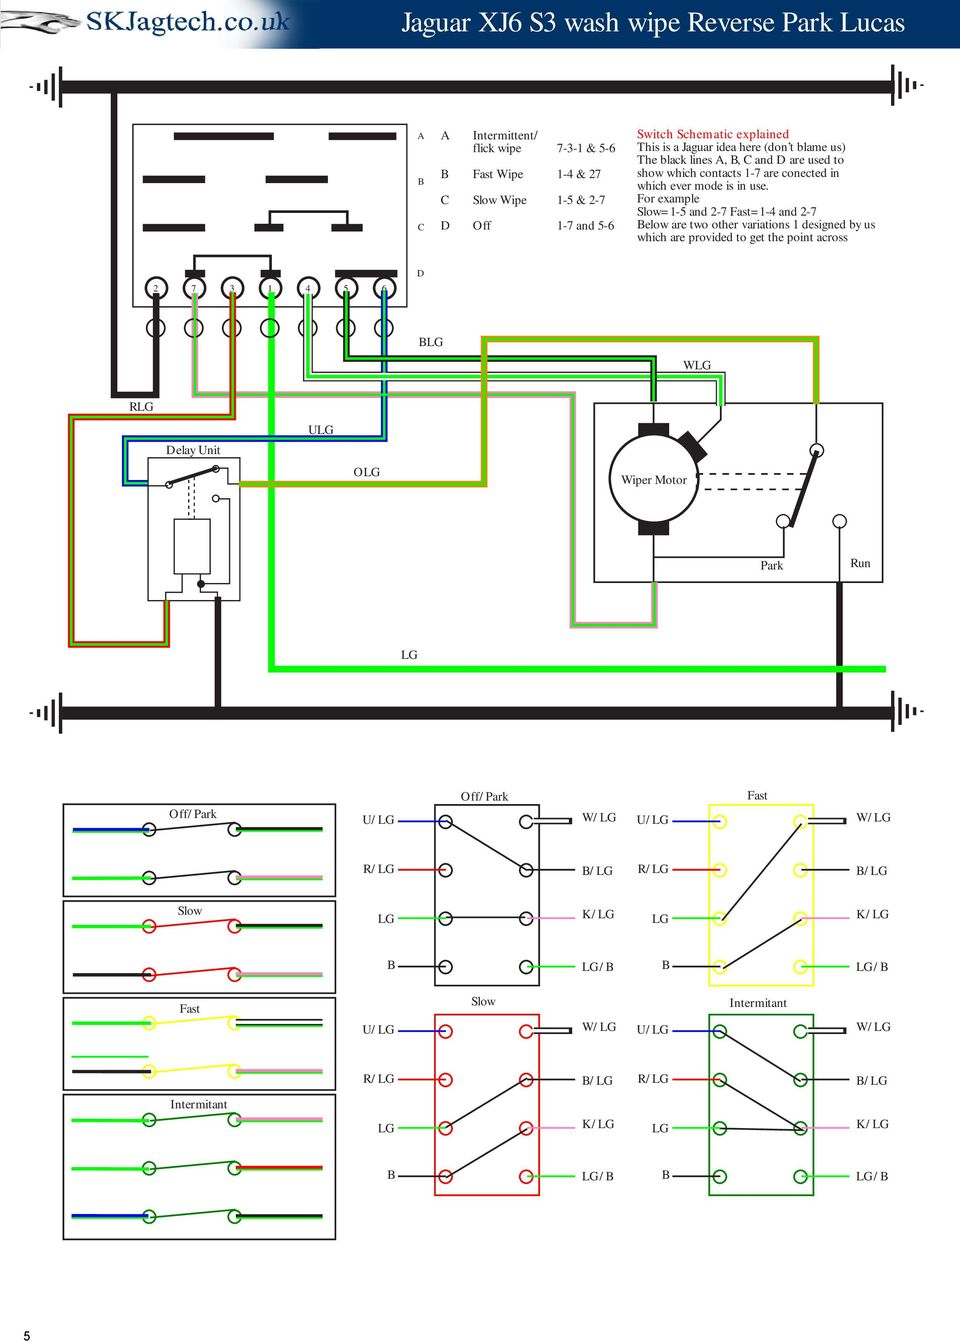 Jaguar Xj6 Electrical Diagram Series 2 Wiring Library For Example Slow1 5 And 7 Fast1 6 3 Schematic Drawings